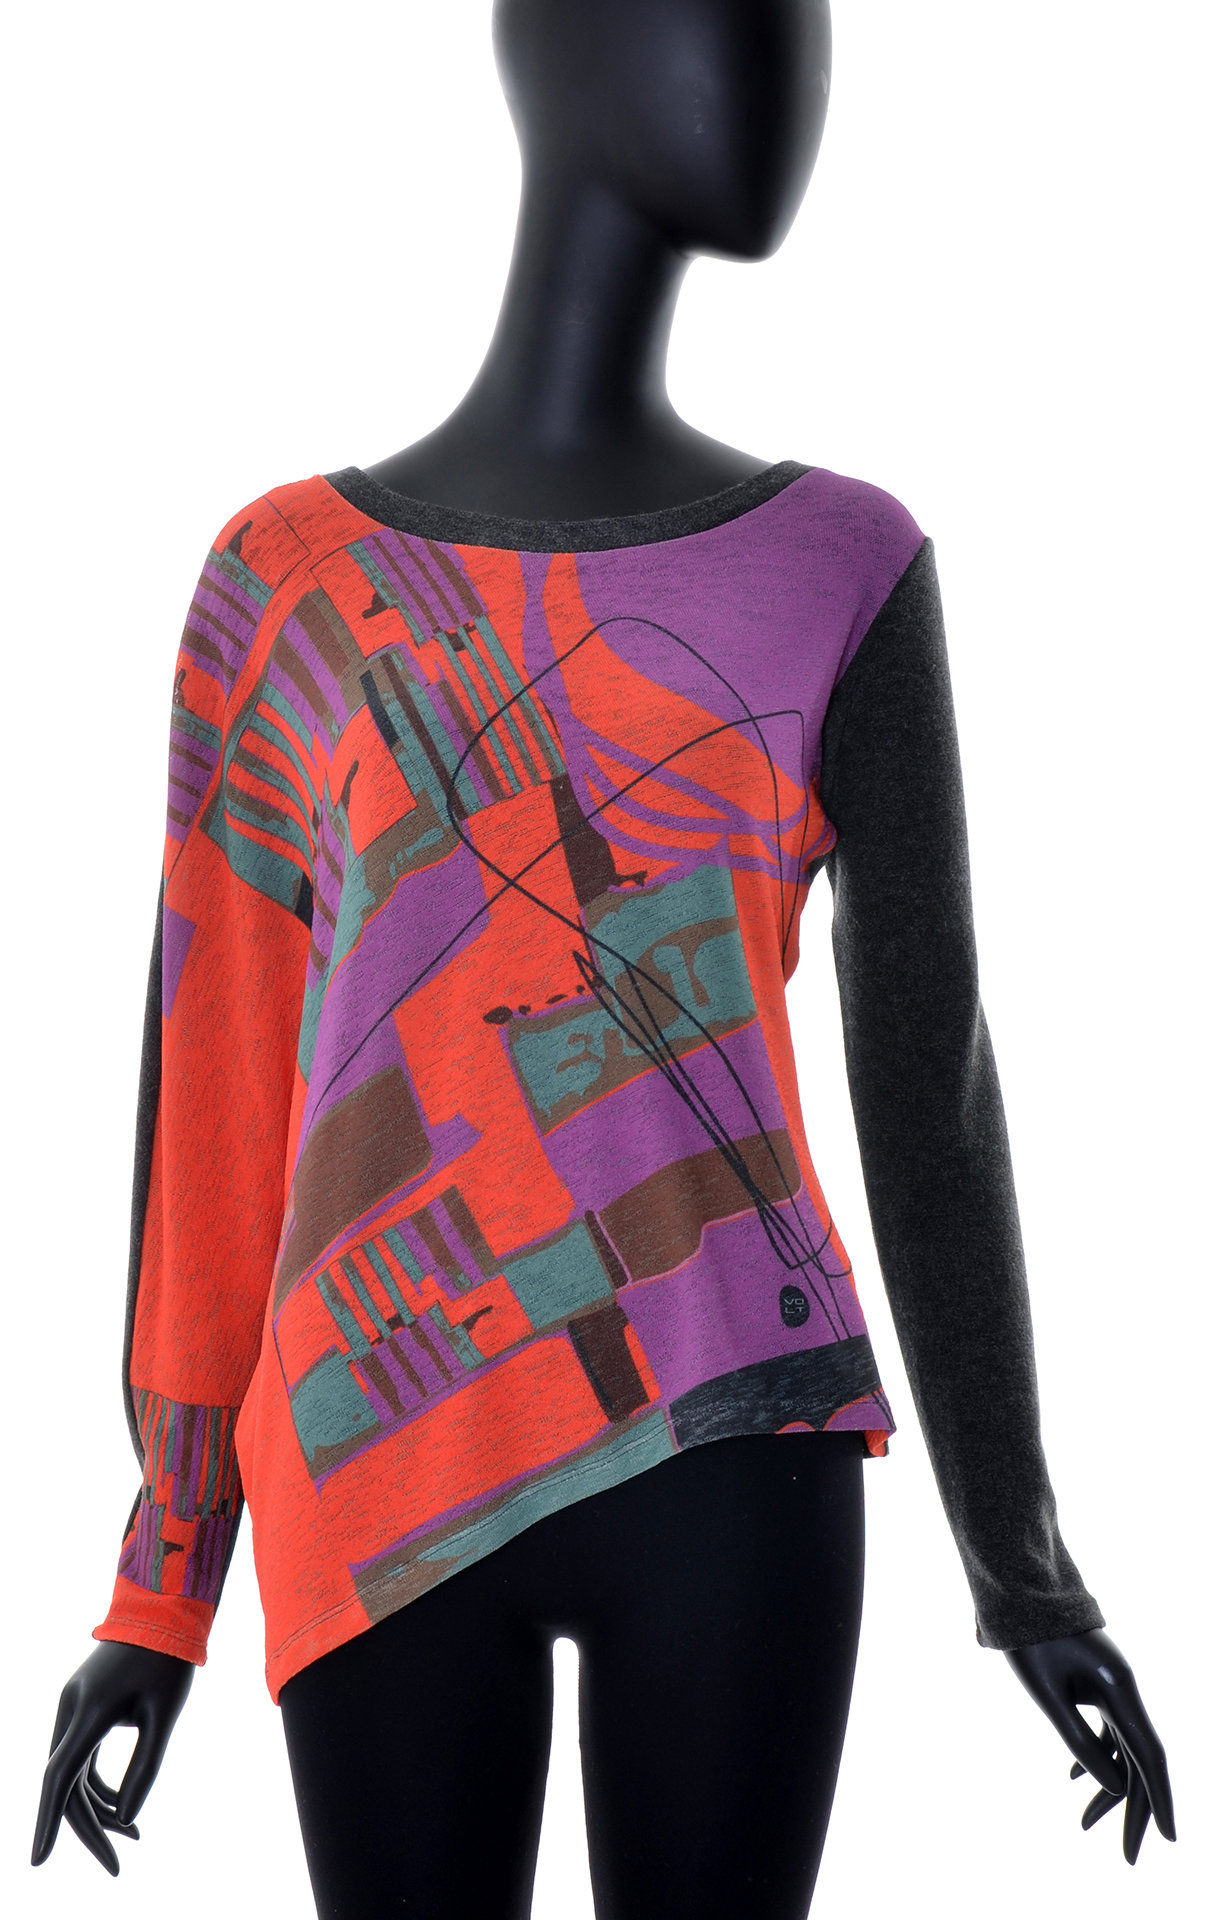 Volt Design: Asymmetrical Purple Pop Abstract Art Tunic (Ships Immed, 1 Left!) VD_360_PLA_C_N1